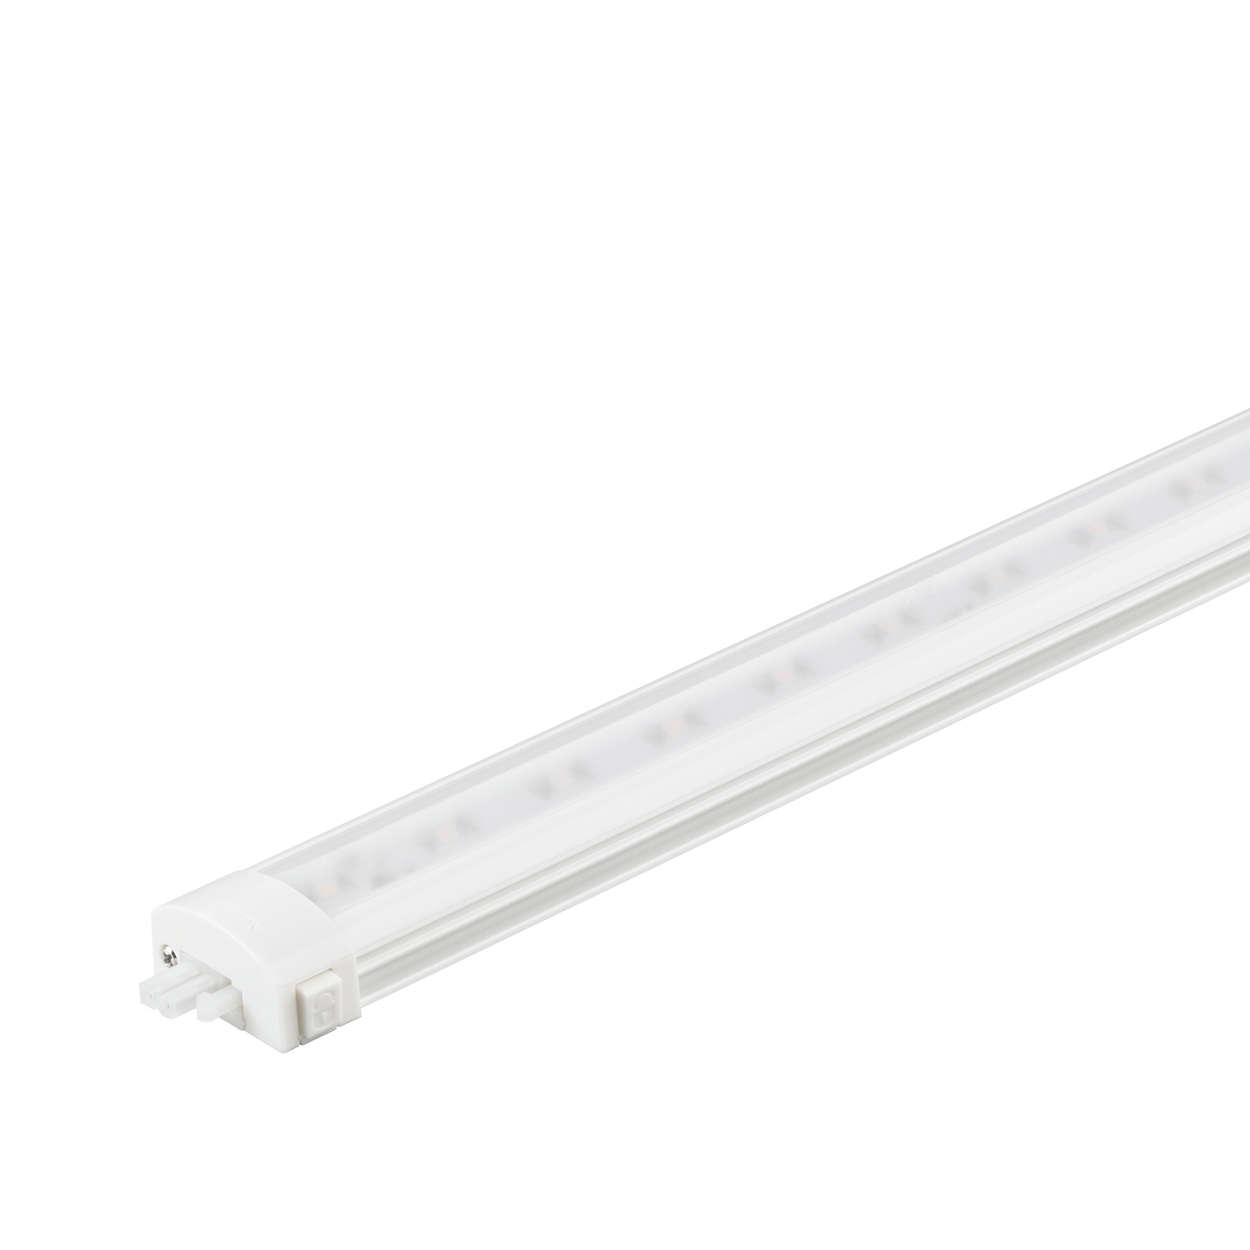 Vaya Cove LP G2 - One of the slimmest profiles available for cove lighting